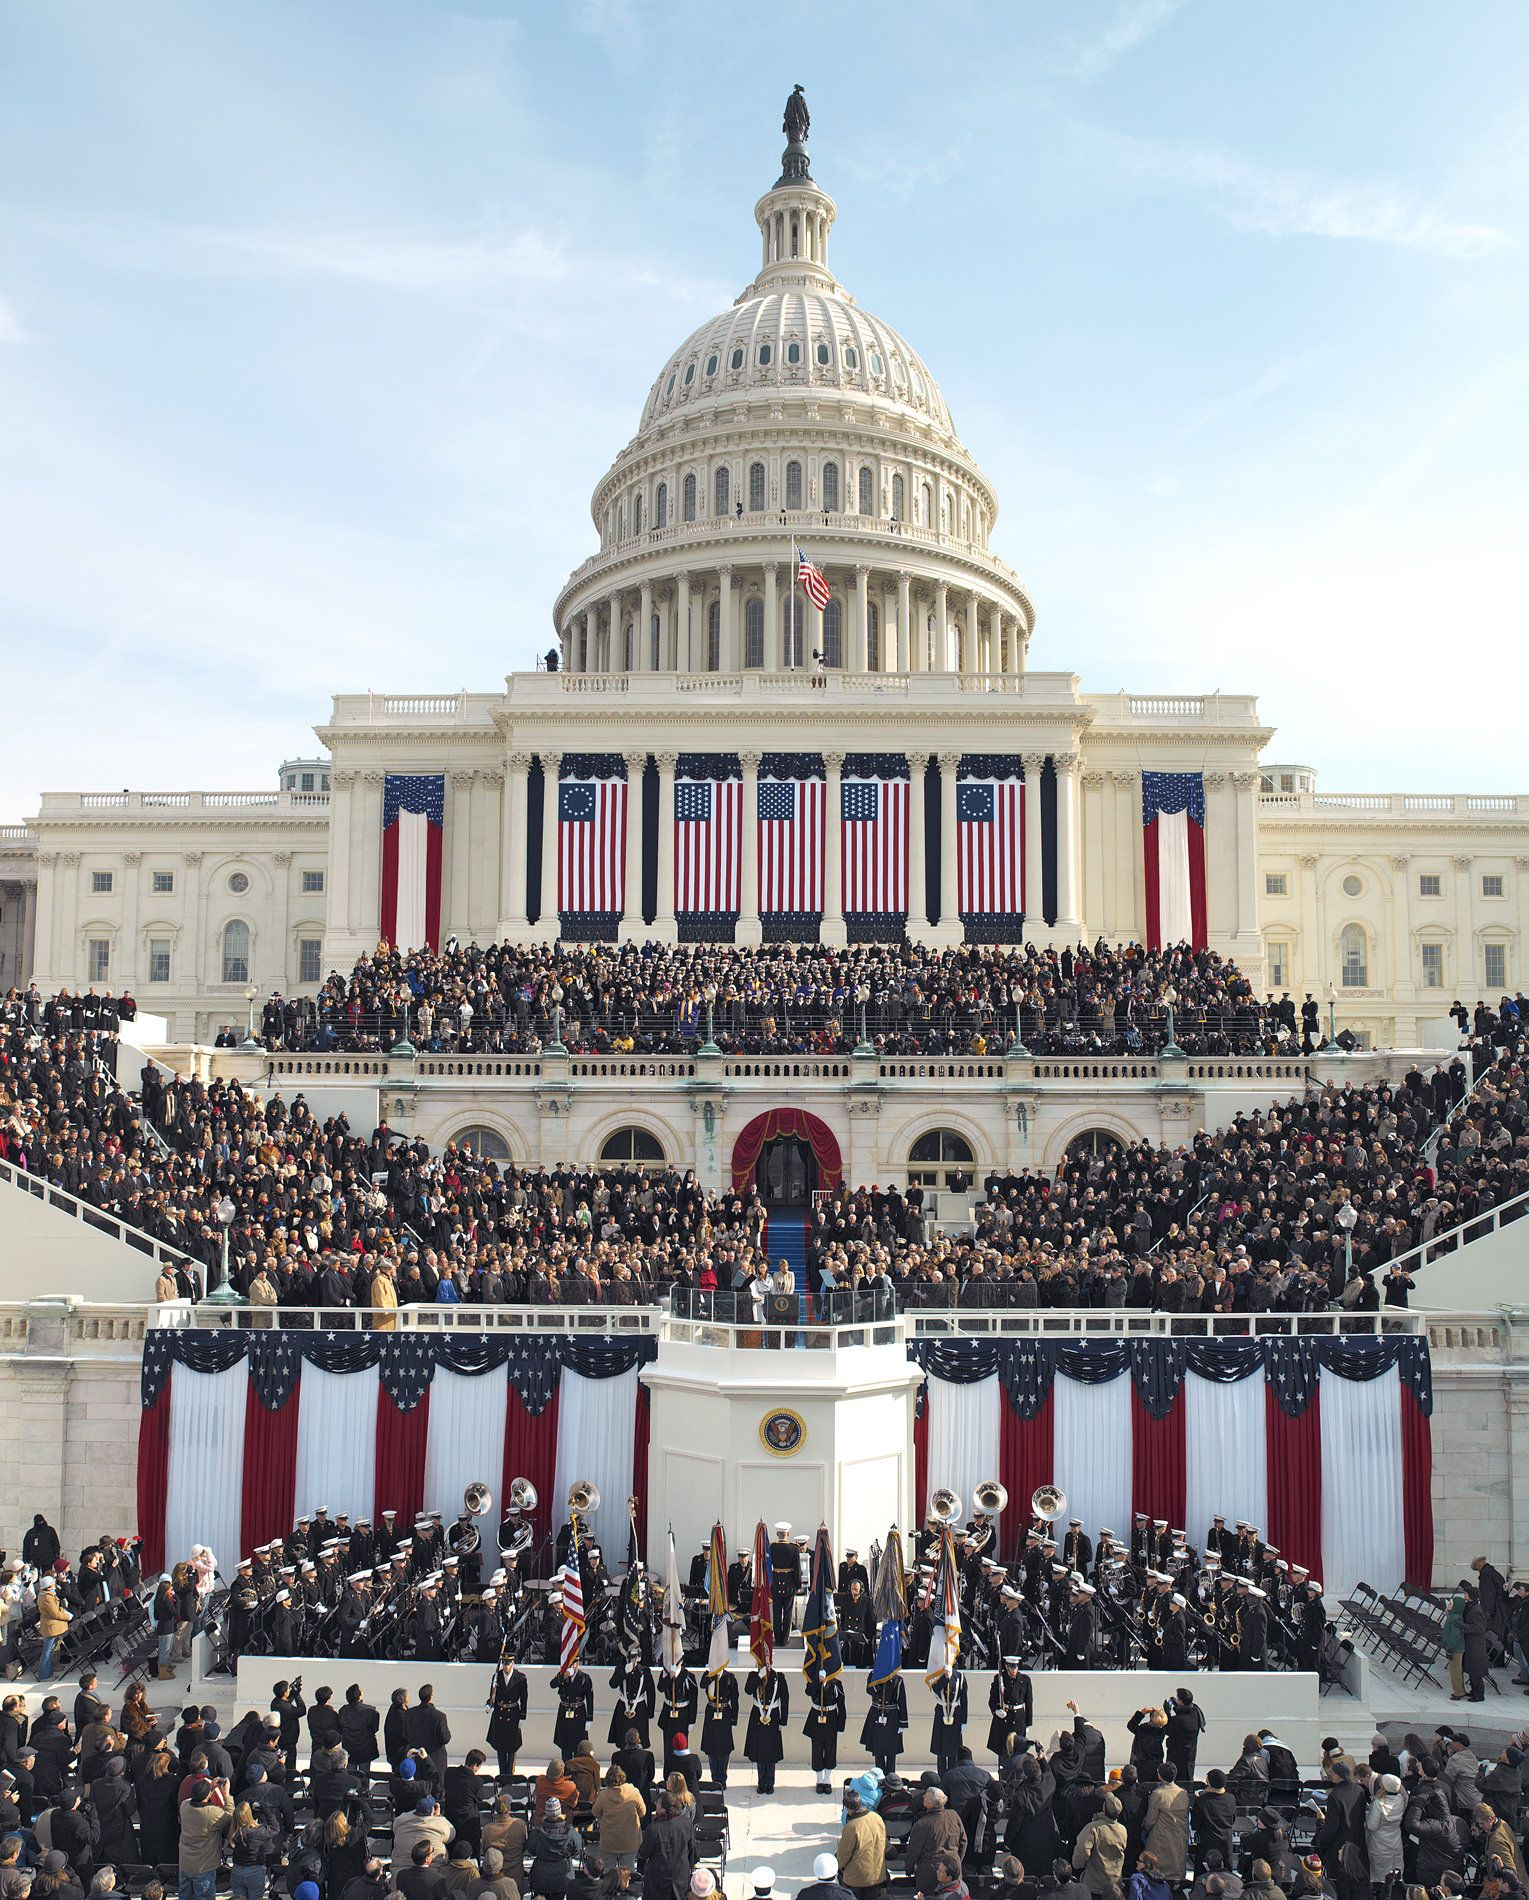 Presidential Inauguration Day In Washington Dc The Peaceful Transfer Of Power Is A Hallmark Of America Presidential Inauguration Obama Photos Barack Obama